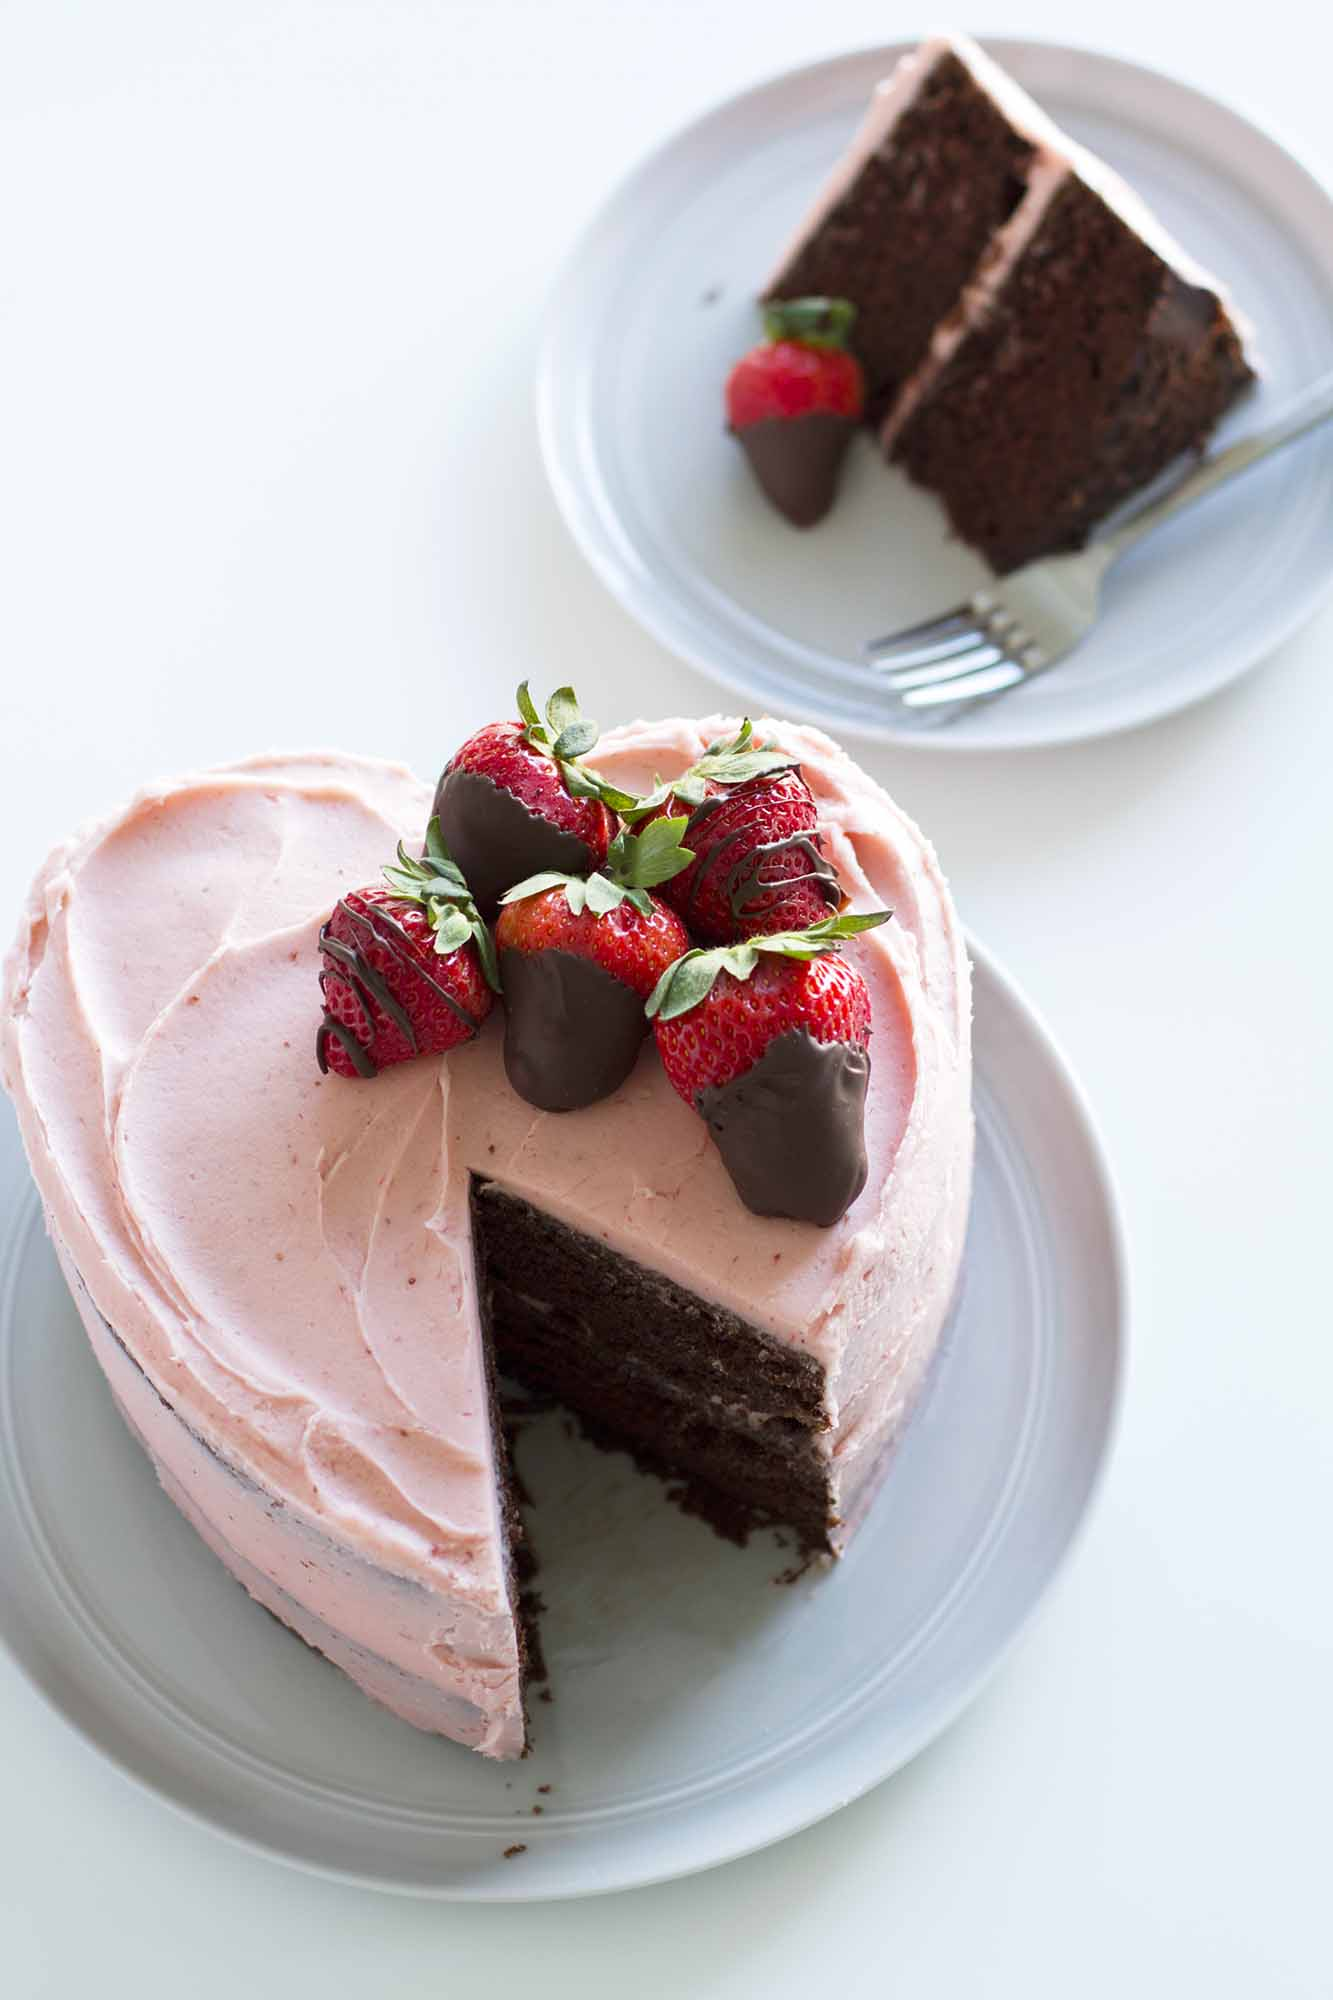 slice of heart shaped chocolate strawberry cake on a plate